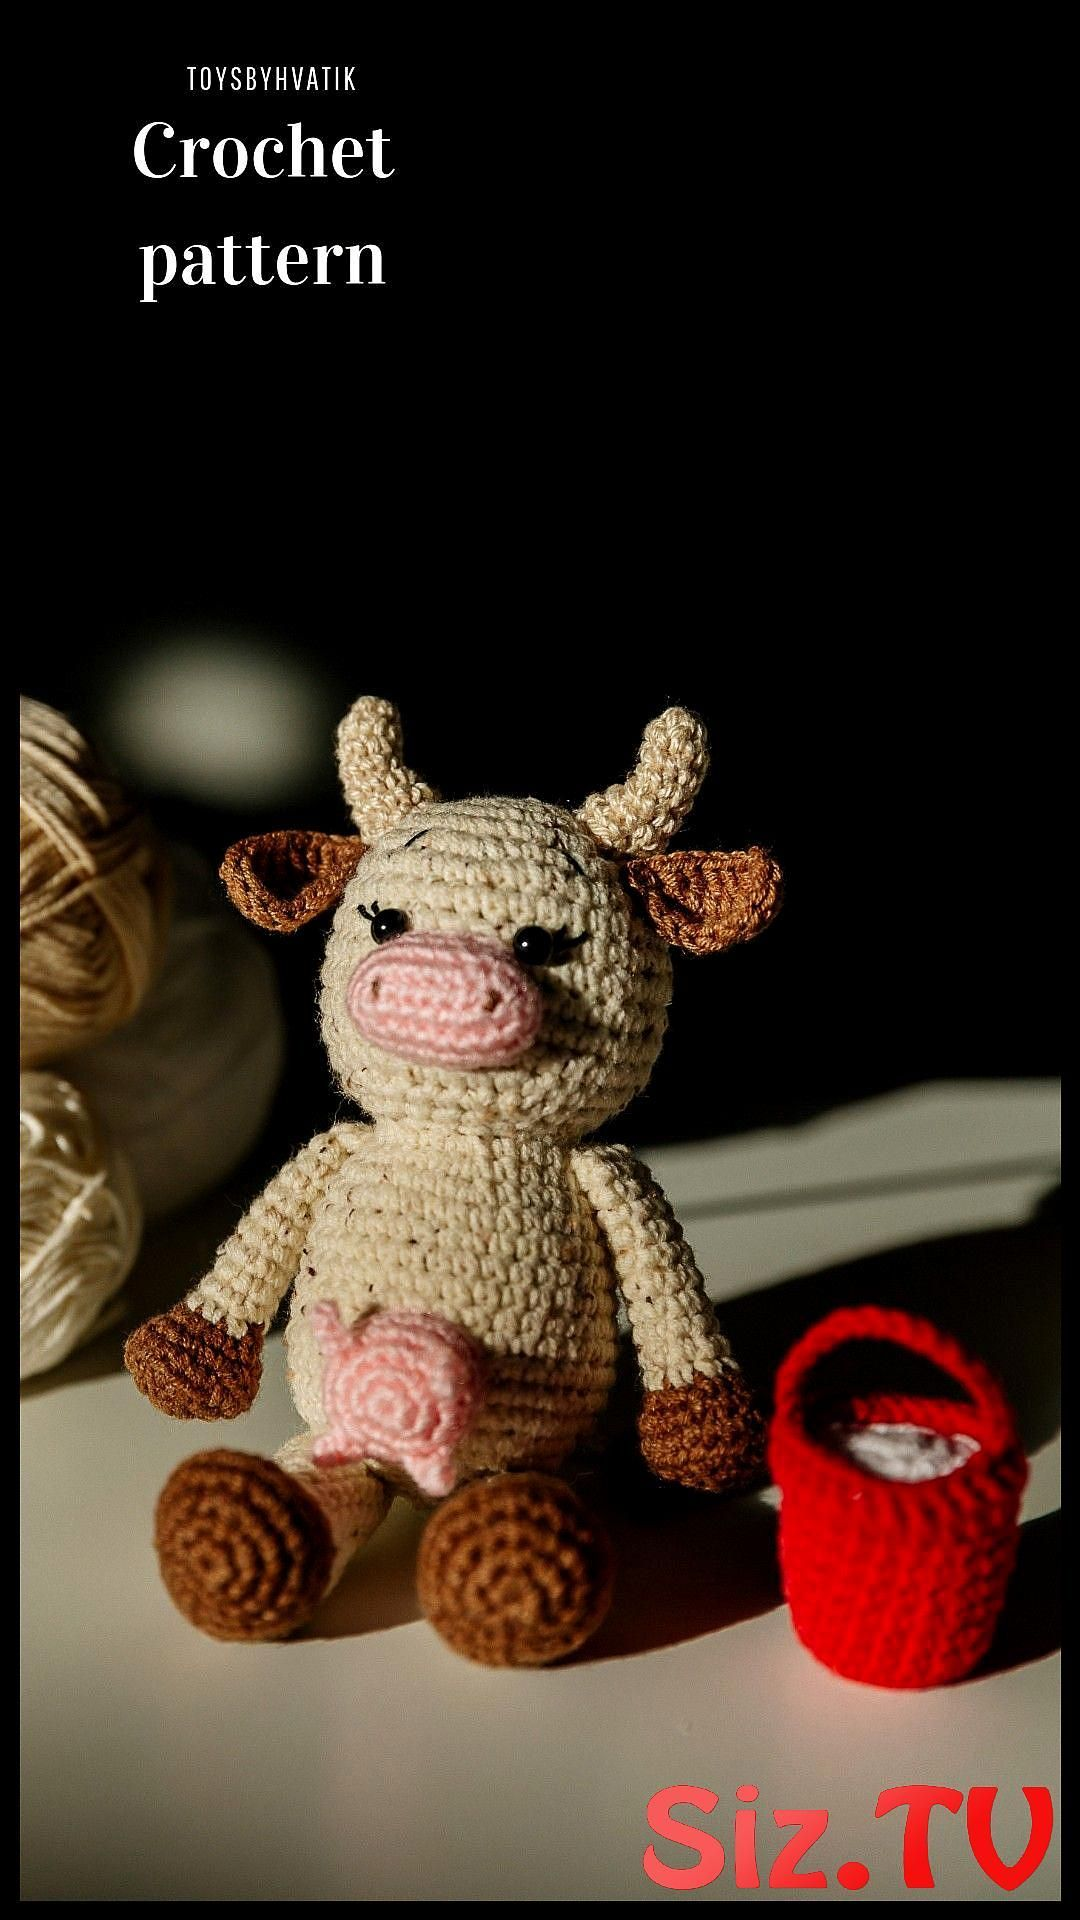 Cow Amigurumi Animal Amigurumi Pattern Crochet Pet Amirurumi Cow Crochet Cow Crochet Pattern Cow Crochet Toy Crochet Pattern Amigurumi Pattern Easy Crochet Cow Easy Crochet Pattern Crochet Pattern Cow Easy Amigurumi Pattern This Is A Listing For The Pattern Not The Finished Product Crochet Pattern CowCrochet Cow Amigurumi Animal ...